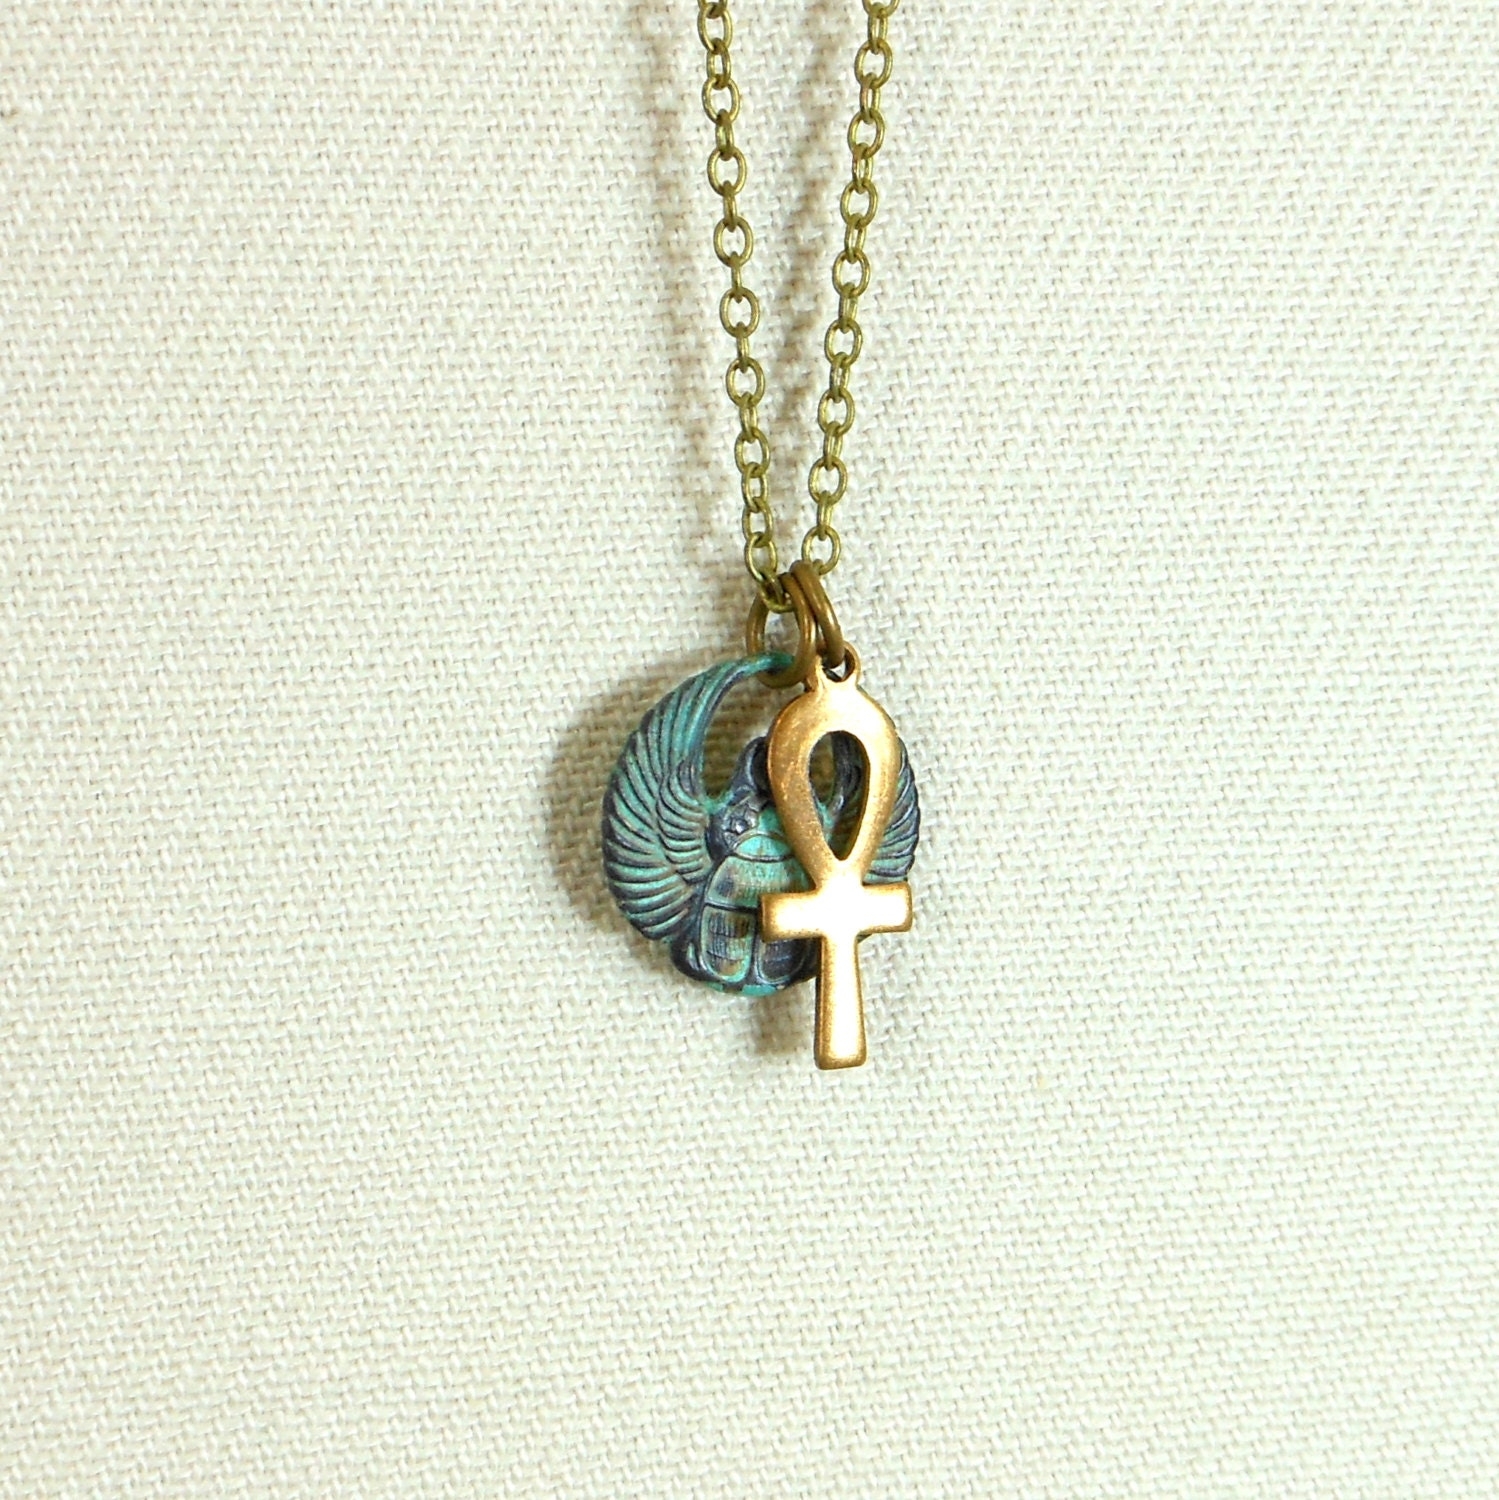 egyptian scarab necklace - photo #39